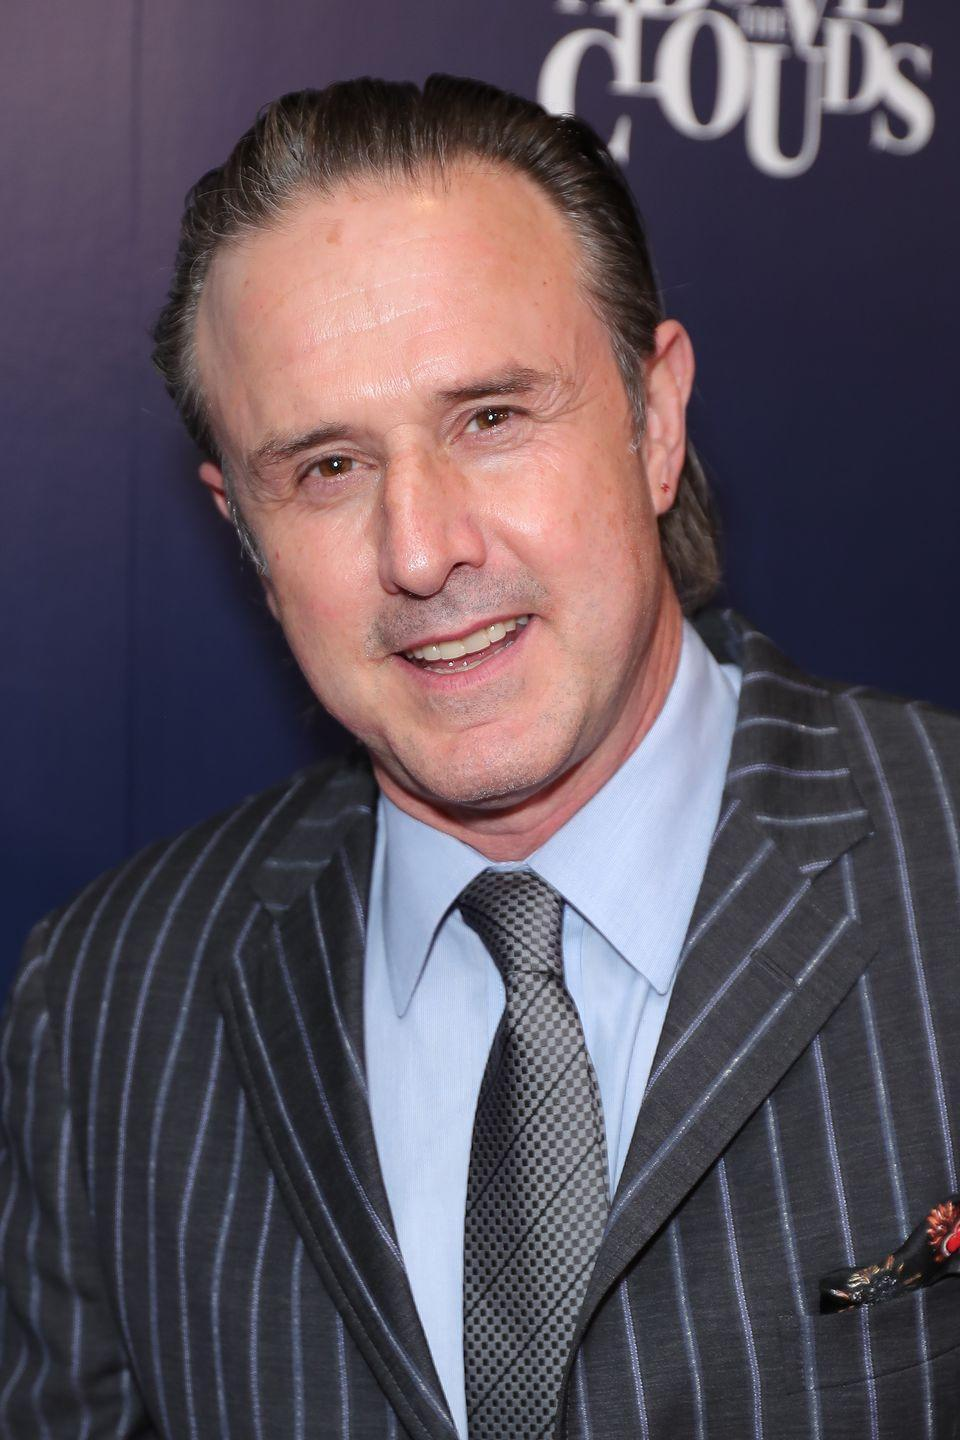 <p>Arquette has had quite a journey since <em>Scream</em>. Recently, he was a professional wrestler. Seriously. He retired from the gig back in 2021, just in time to come back to <em>Scream</em> as Sheriff Dewey Riley.</p>